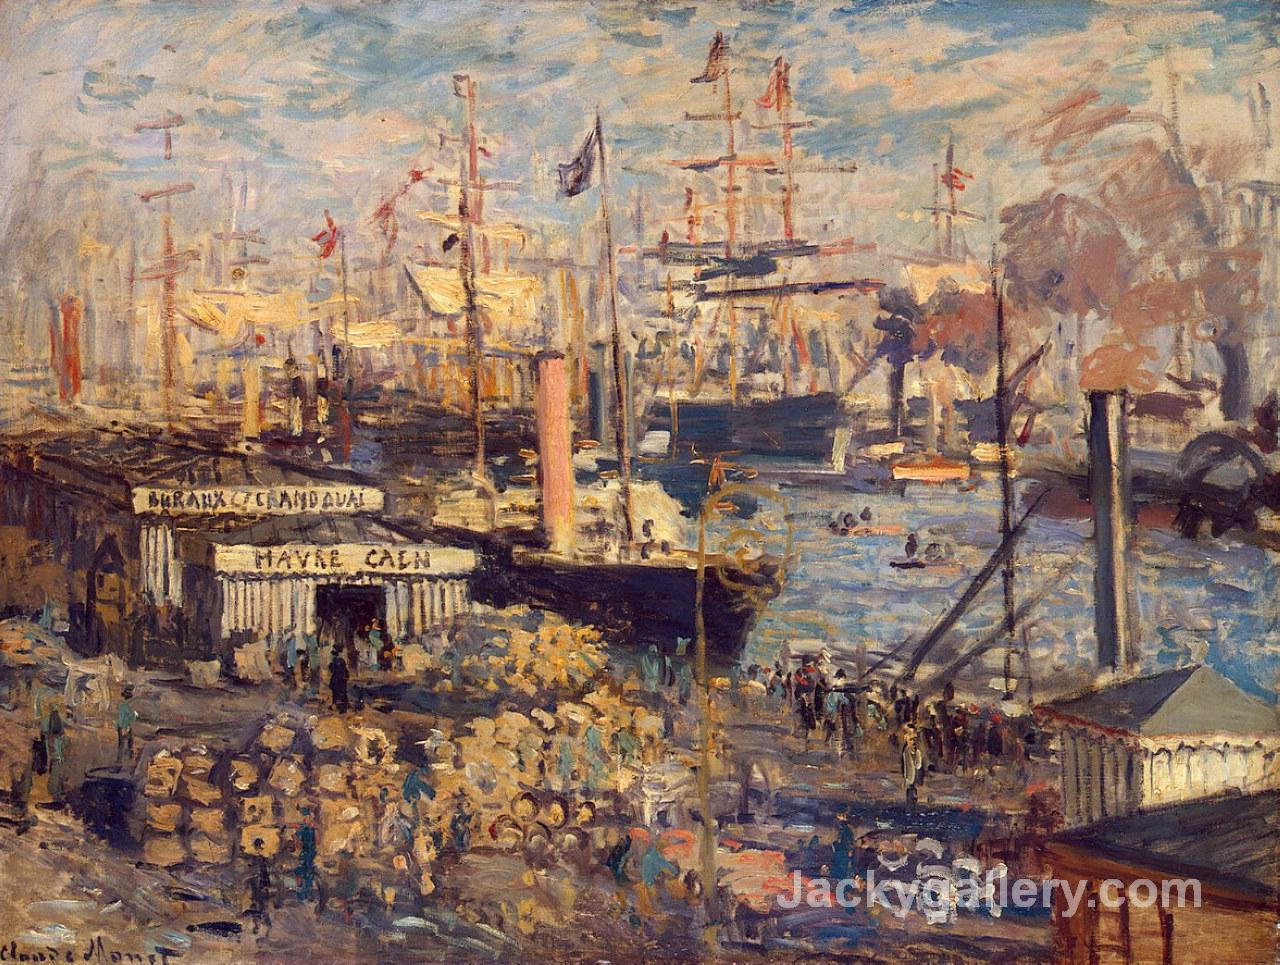 The Grand Dock at Le Havre by Claude Monet paintings reproduction